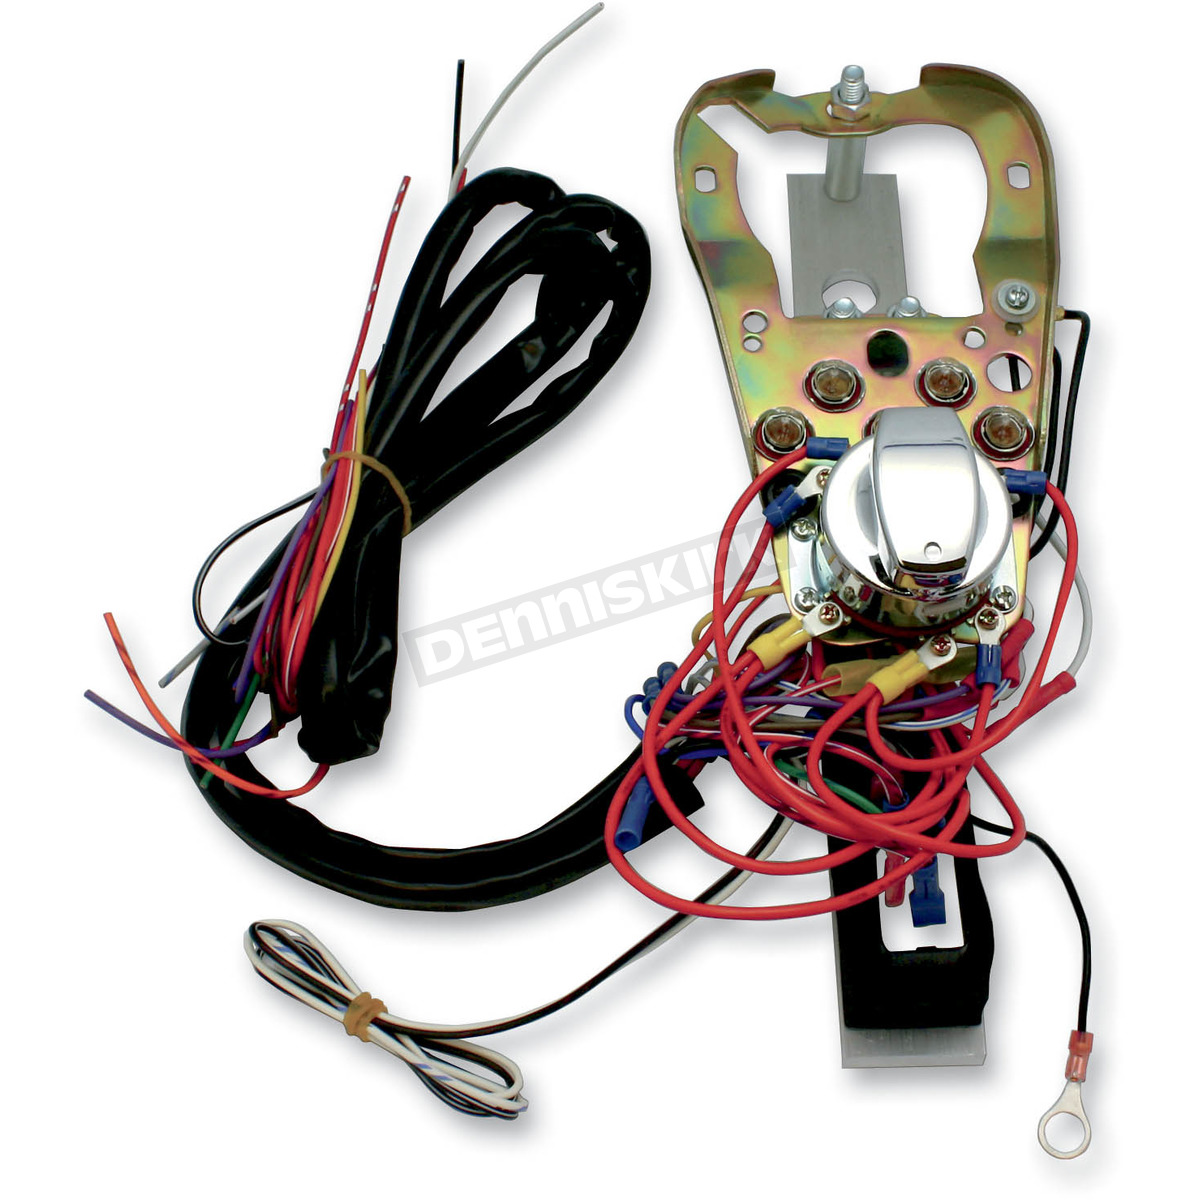 pro one dash base with wire harness kit 400909 harley davidson harley davidson wiring harness videos pro one dash base with wire harness kit 400909